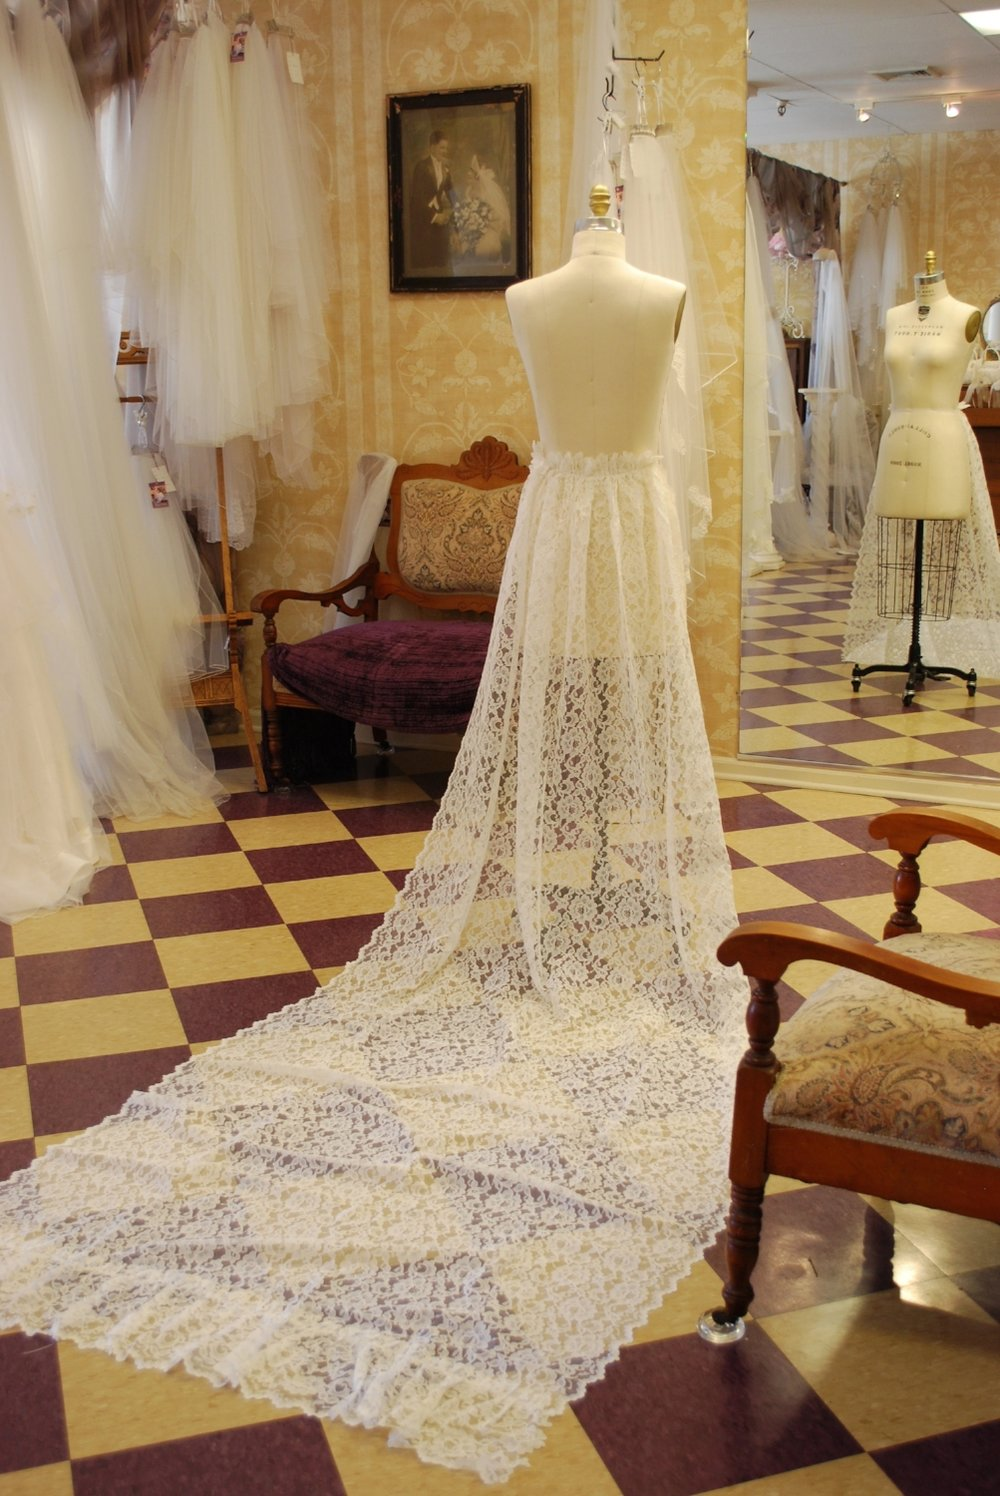 This lace train was in pristine condition. I pinned it to my dress form and admired its beauty!